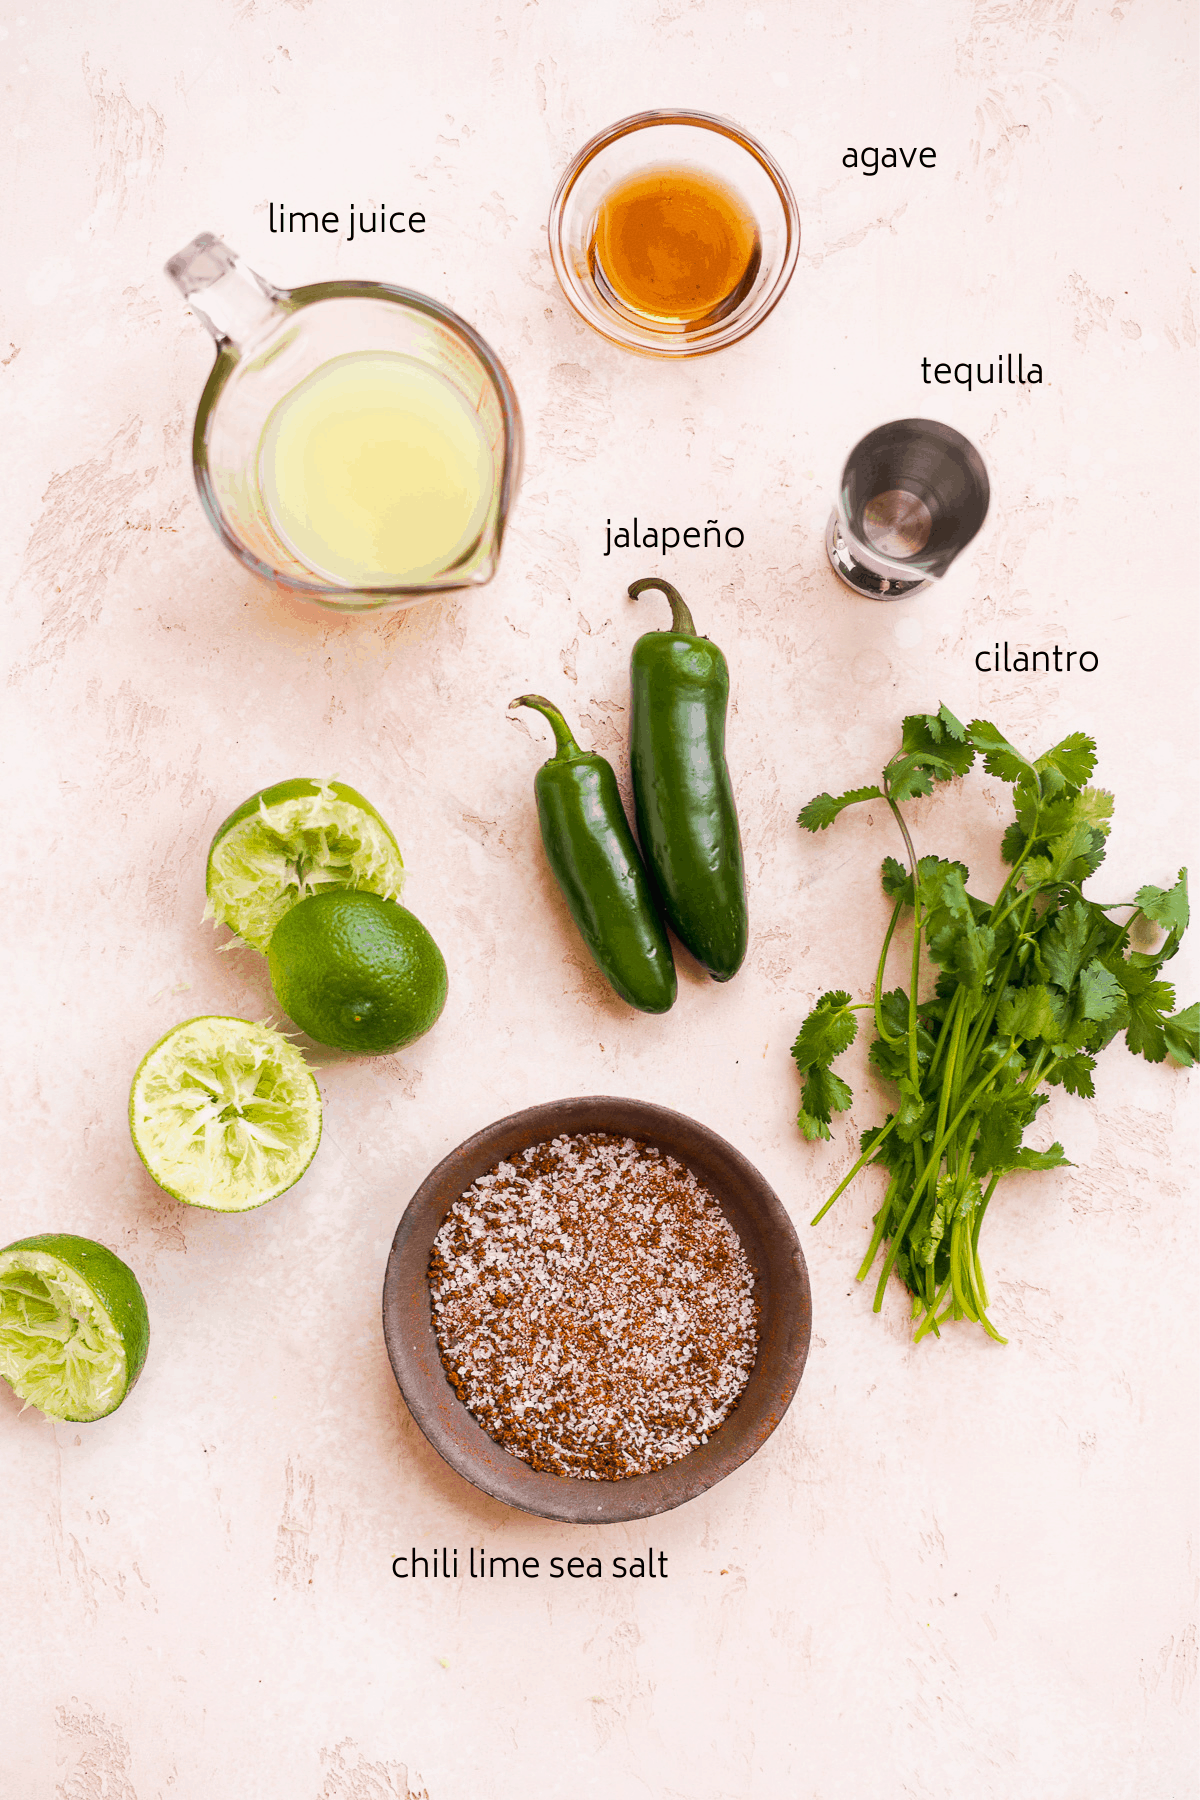 Image of cocktail ingredients with black labels on a dusty pink surface including limes, cilantro, and jalapeño.